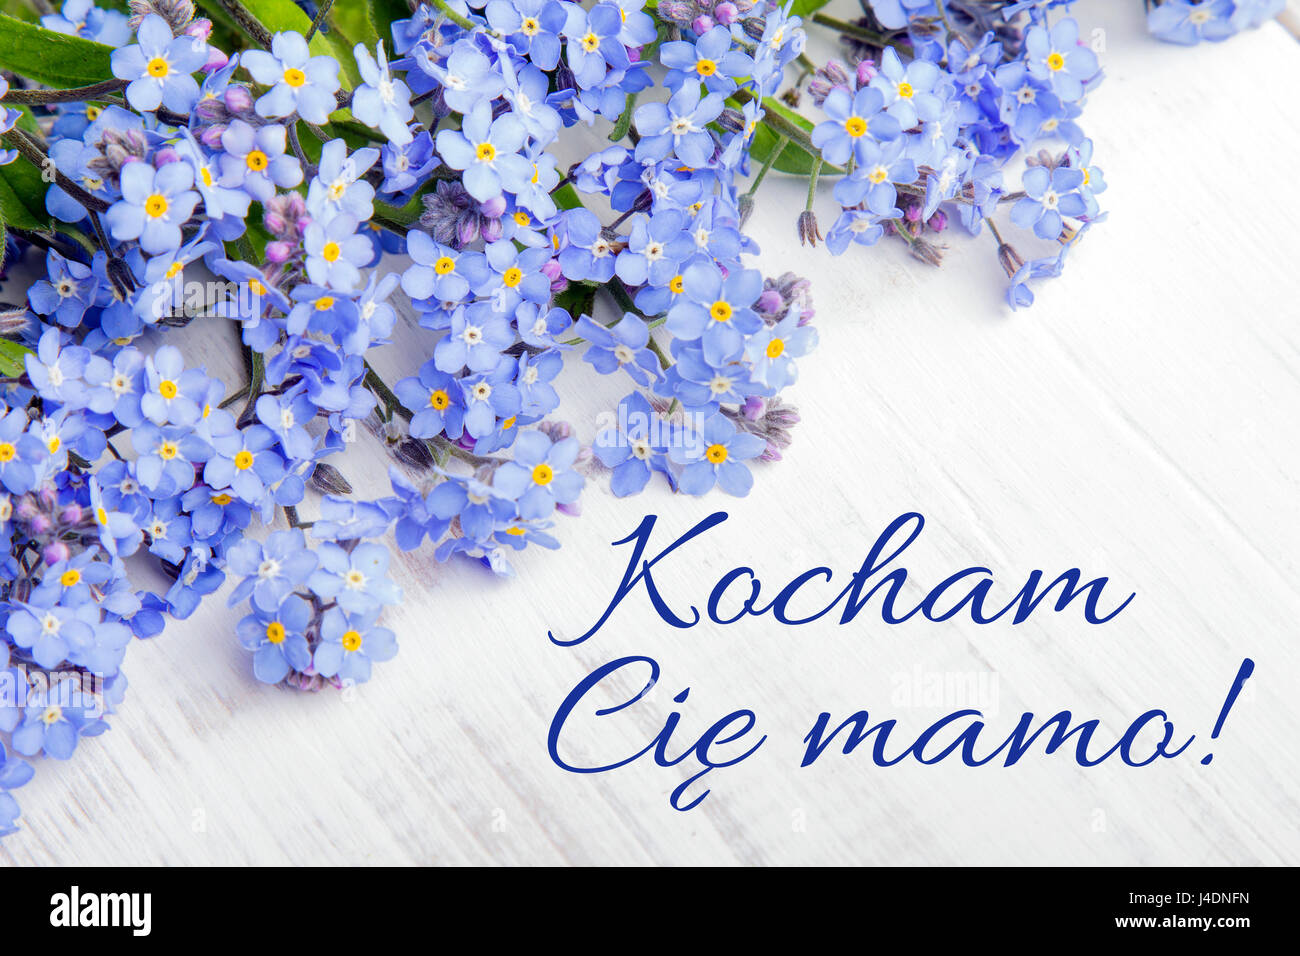 Mothers Day Card With Polish Words I Love You Mom And Blue Flowers